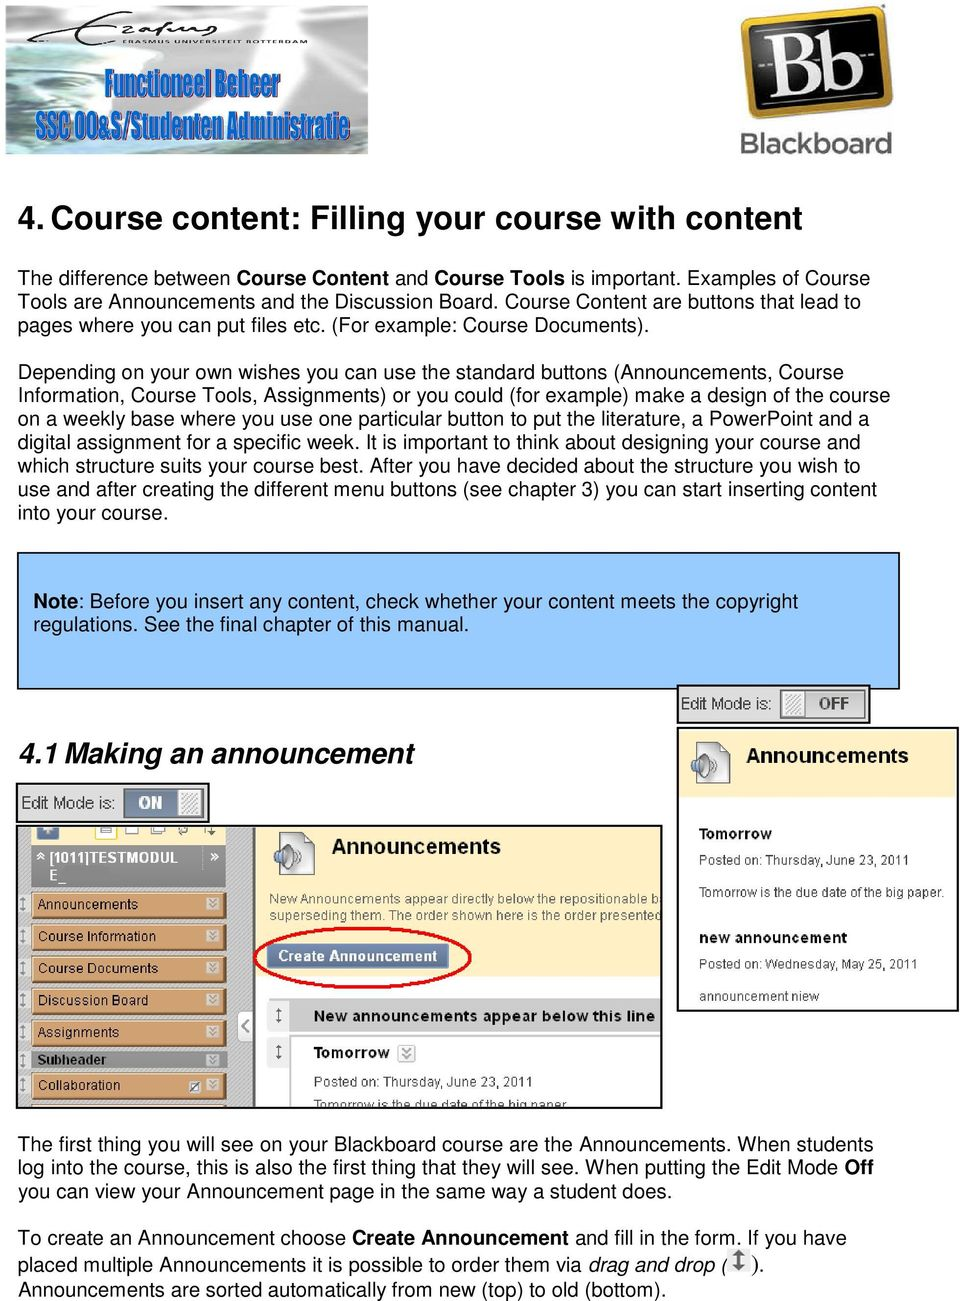 Depending on your own wishes you can use the standard buttons (Announcements, Course Information, Course Tools, Assignments) or you could (for example) make a design of the course on a weekly base